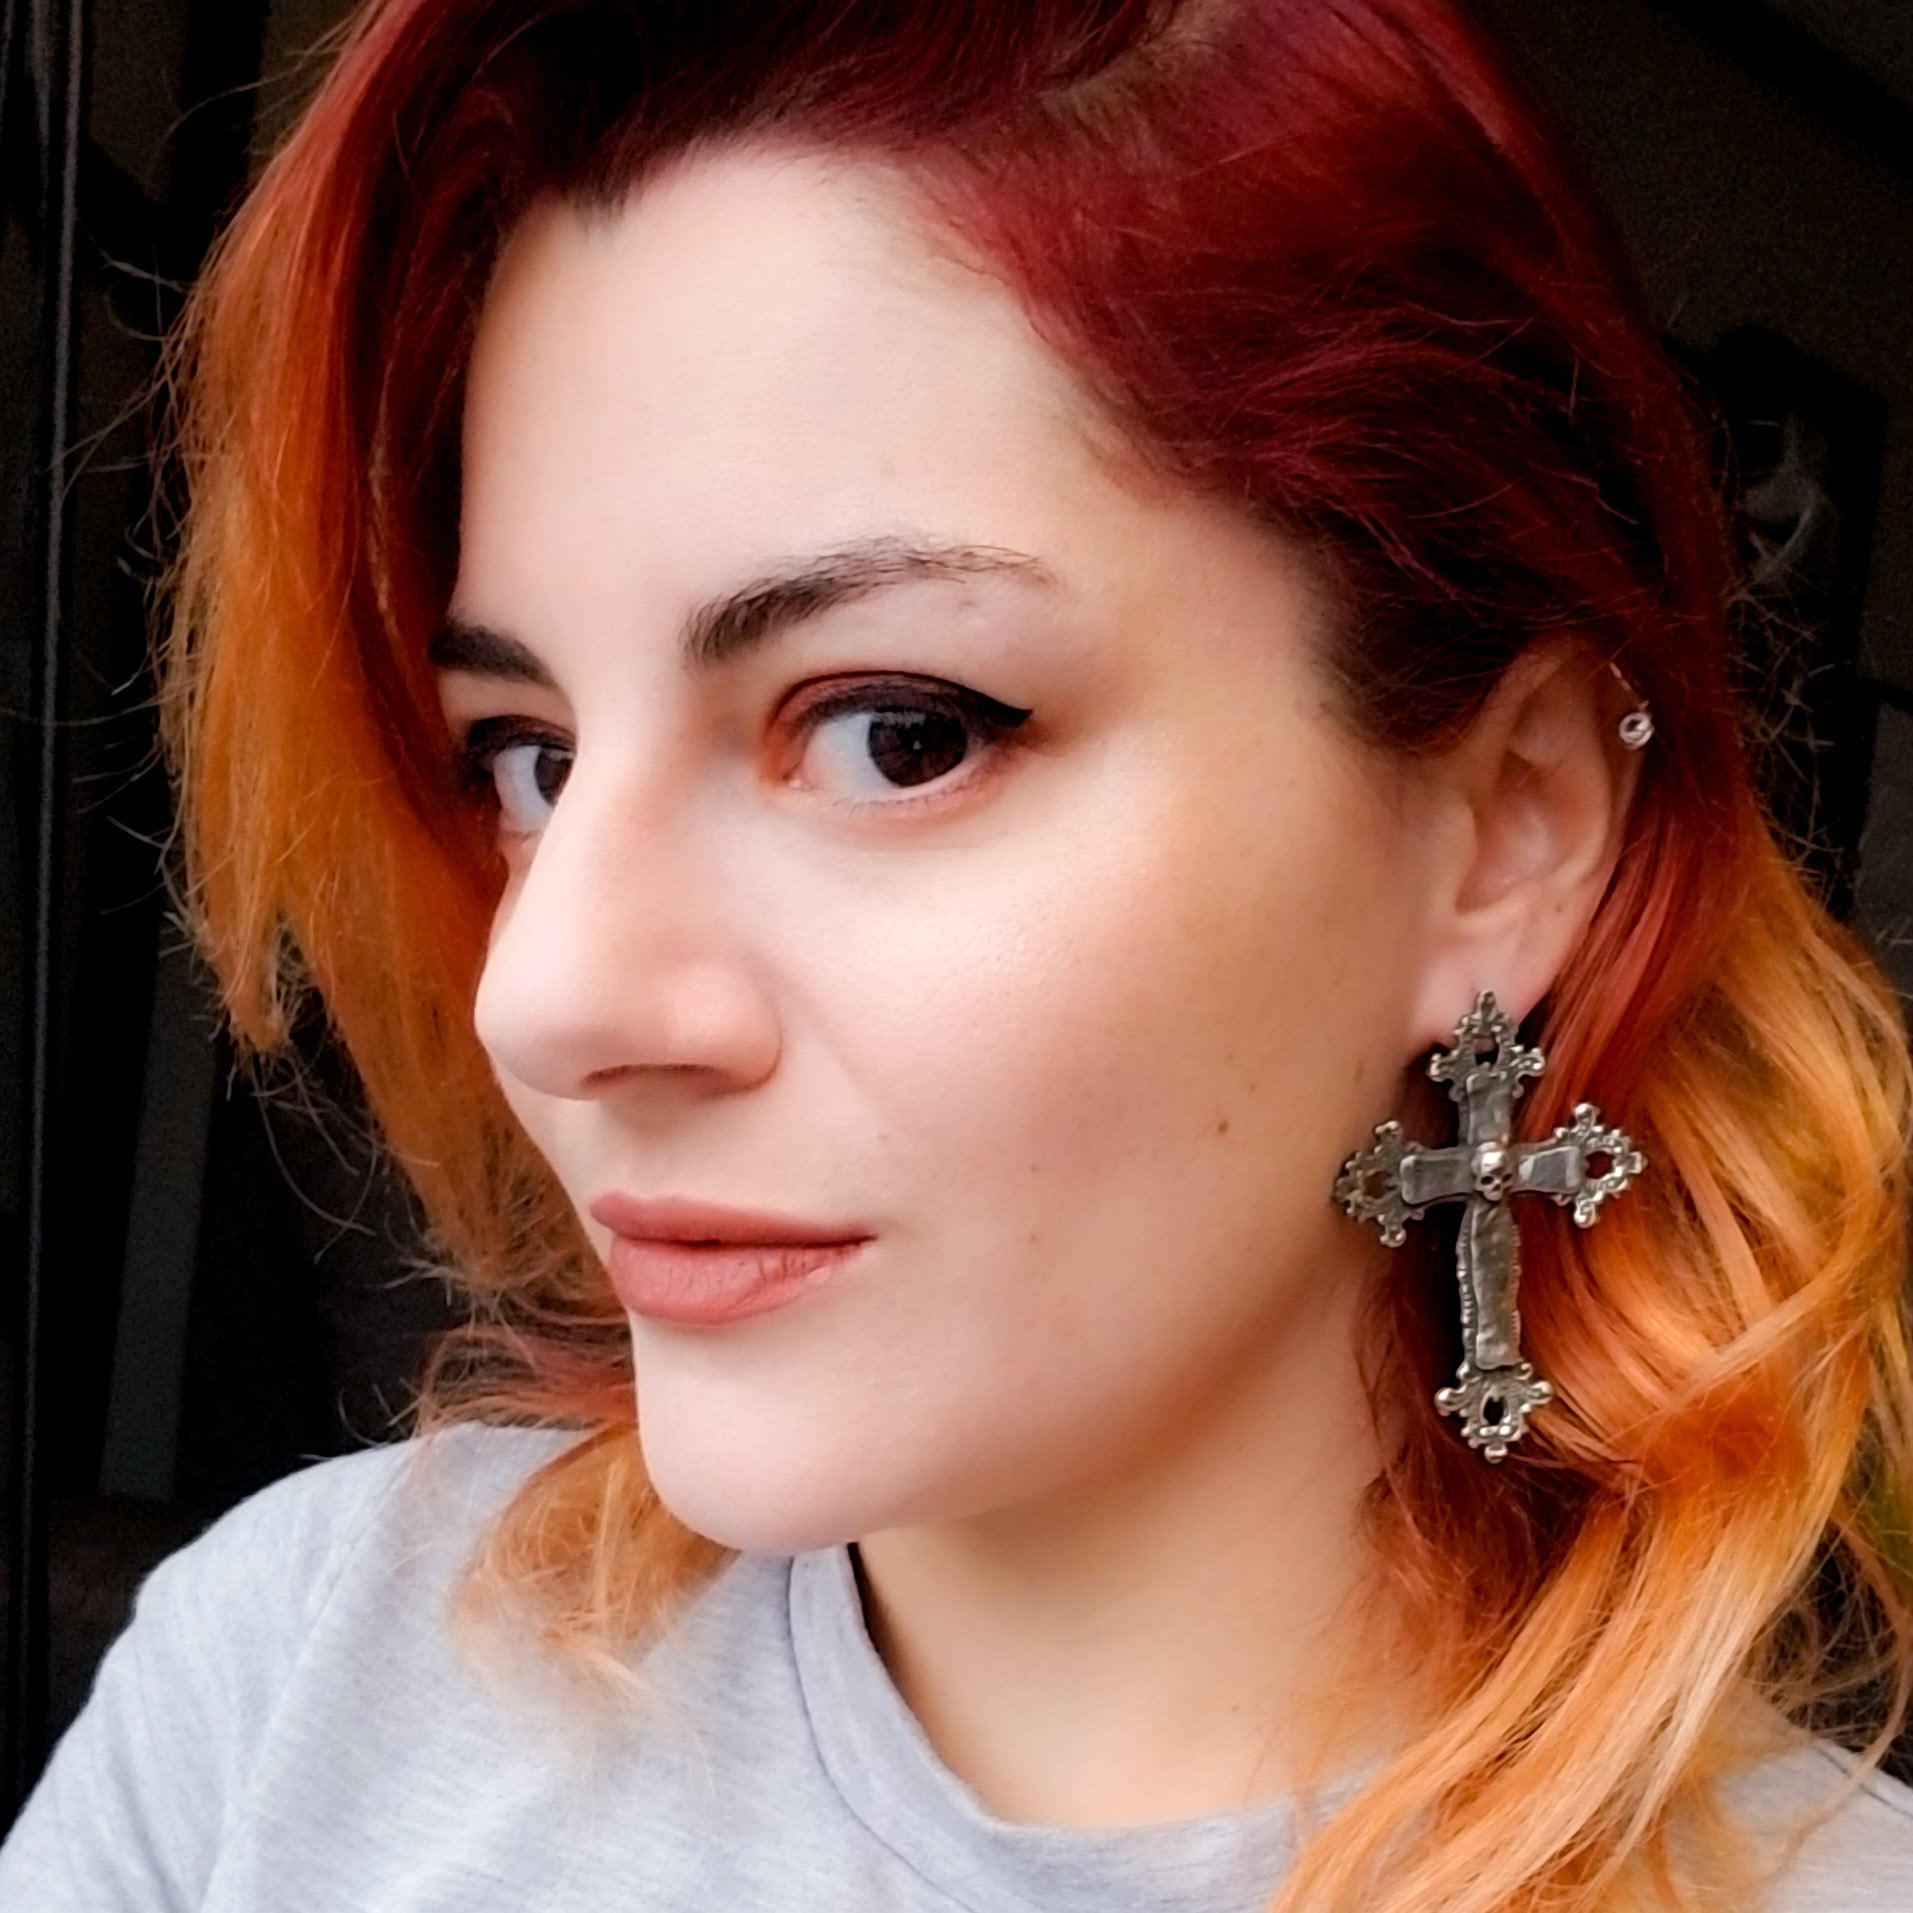 Large Gothic Cross and Skull Earrings - Inchoo Bijoux